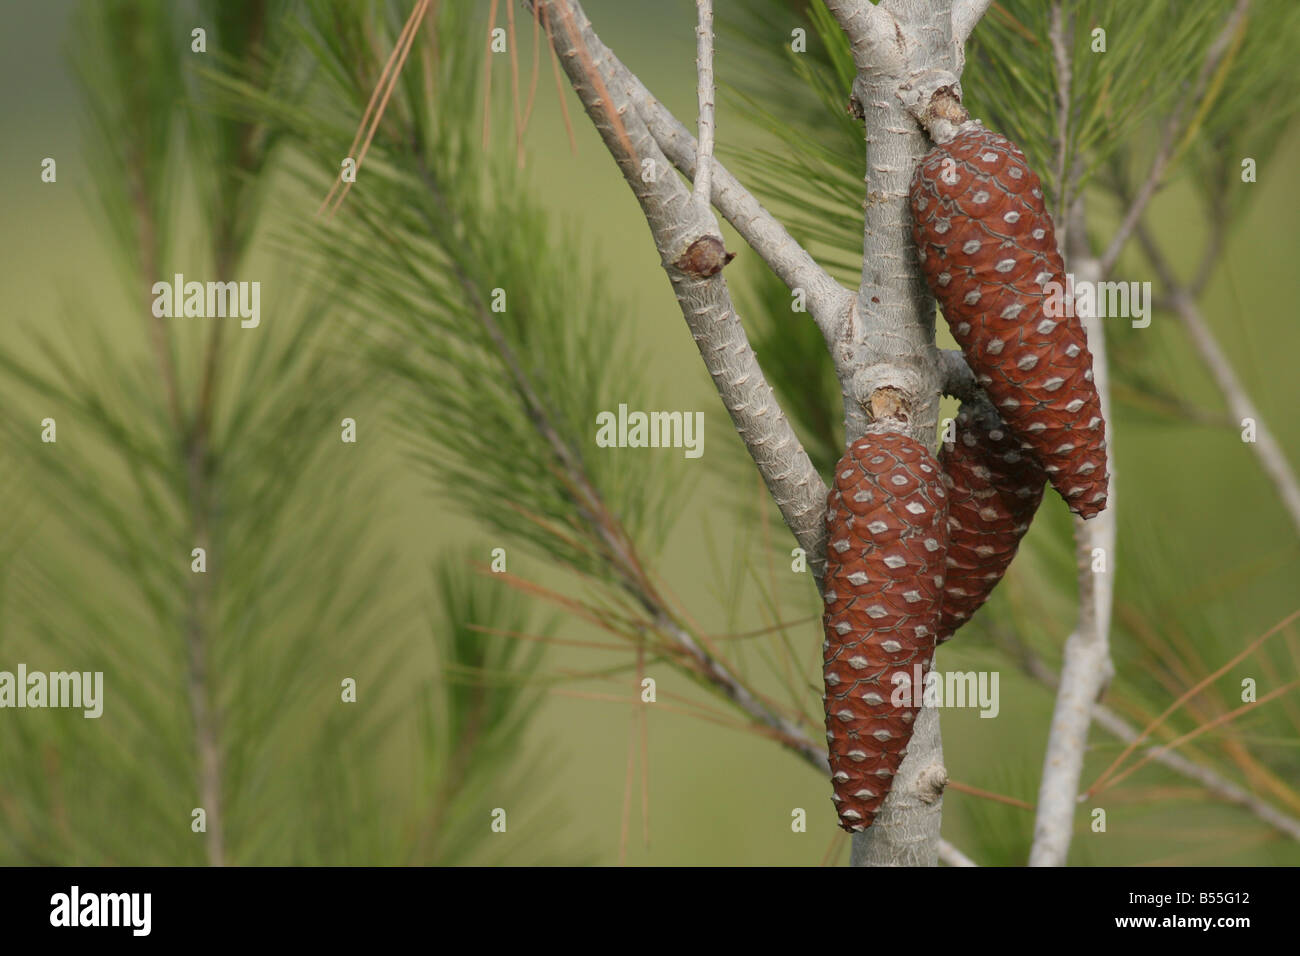 cones and leaves of the Aleppo Pine Pinus halepensis - Stock Image